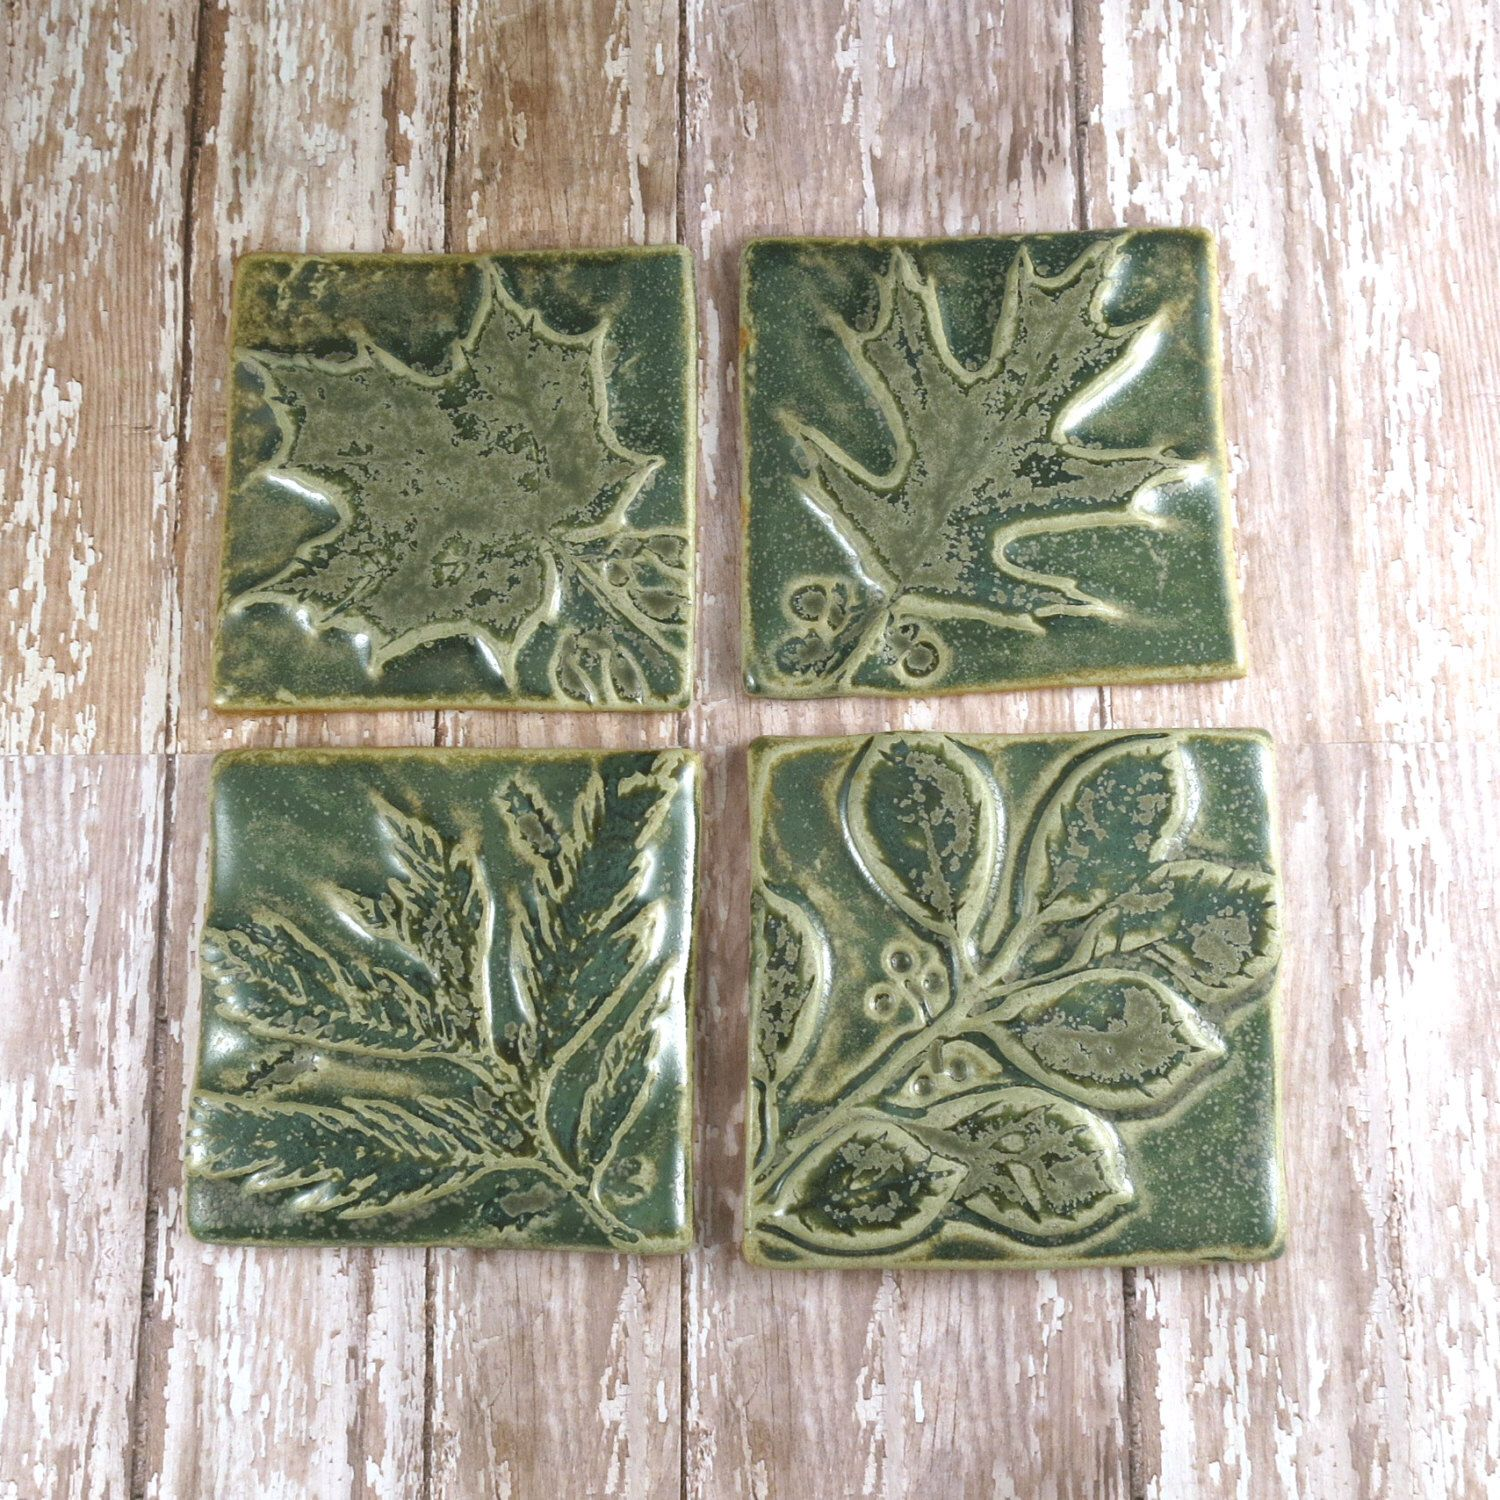 Kitchen Tiles Handmade backsplash accent ceramic tile wall art - kitchen tile - bathroom